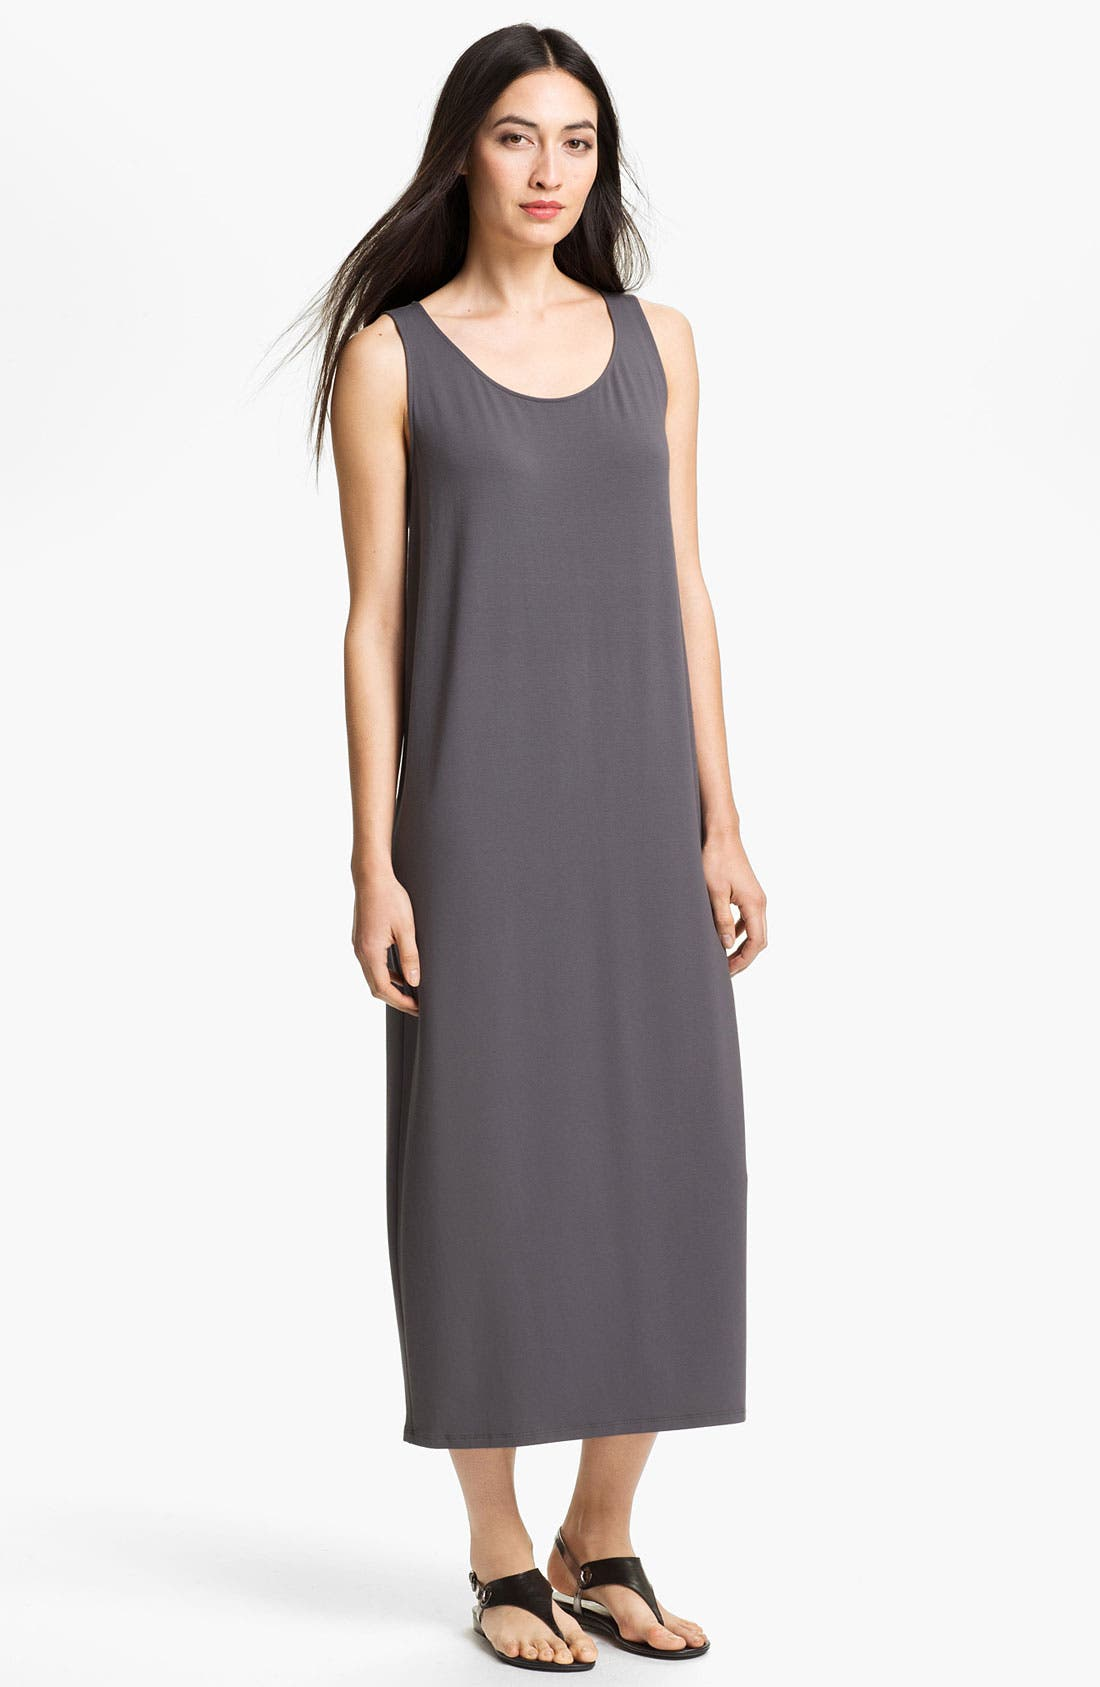 Alternate Image 1 Selected - Eileen Fisher Scoop Neck Sleeveless Dress